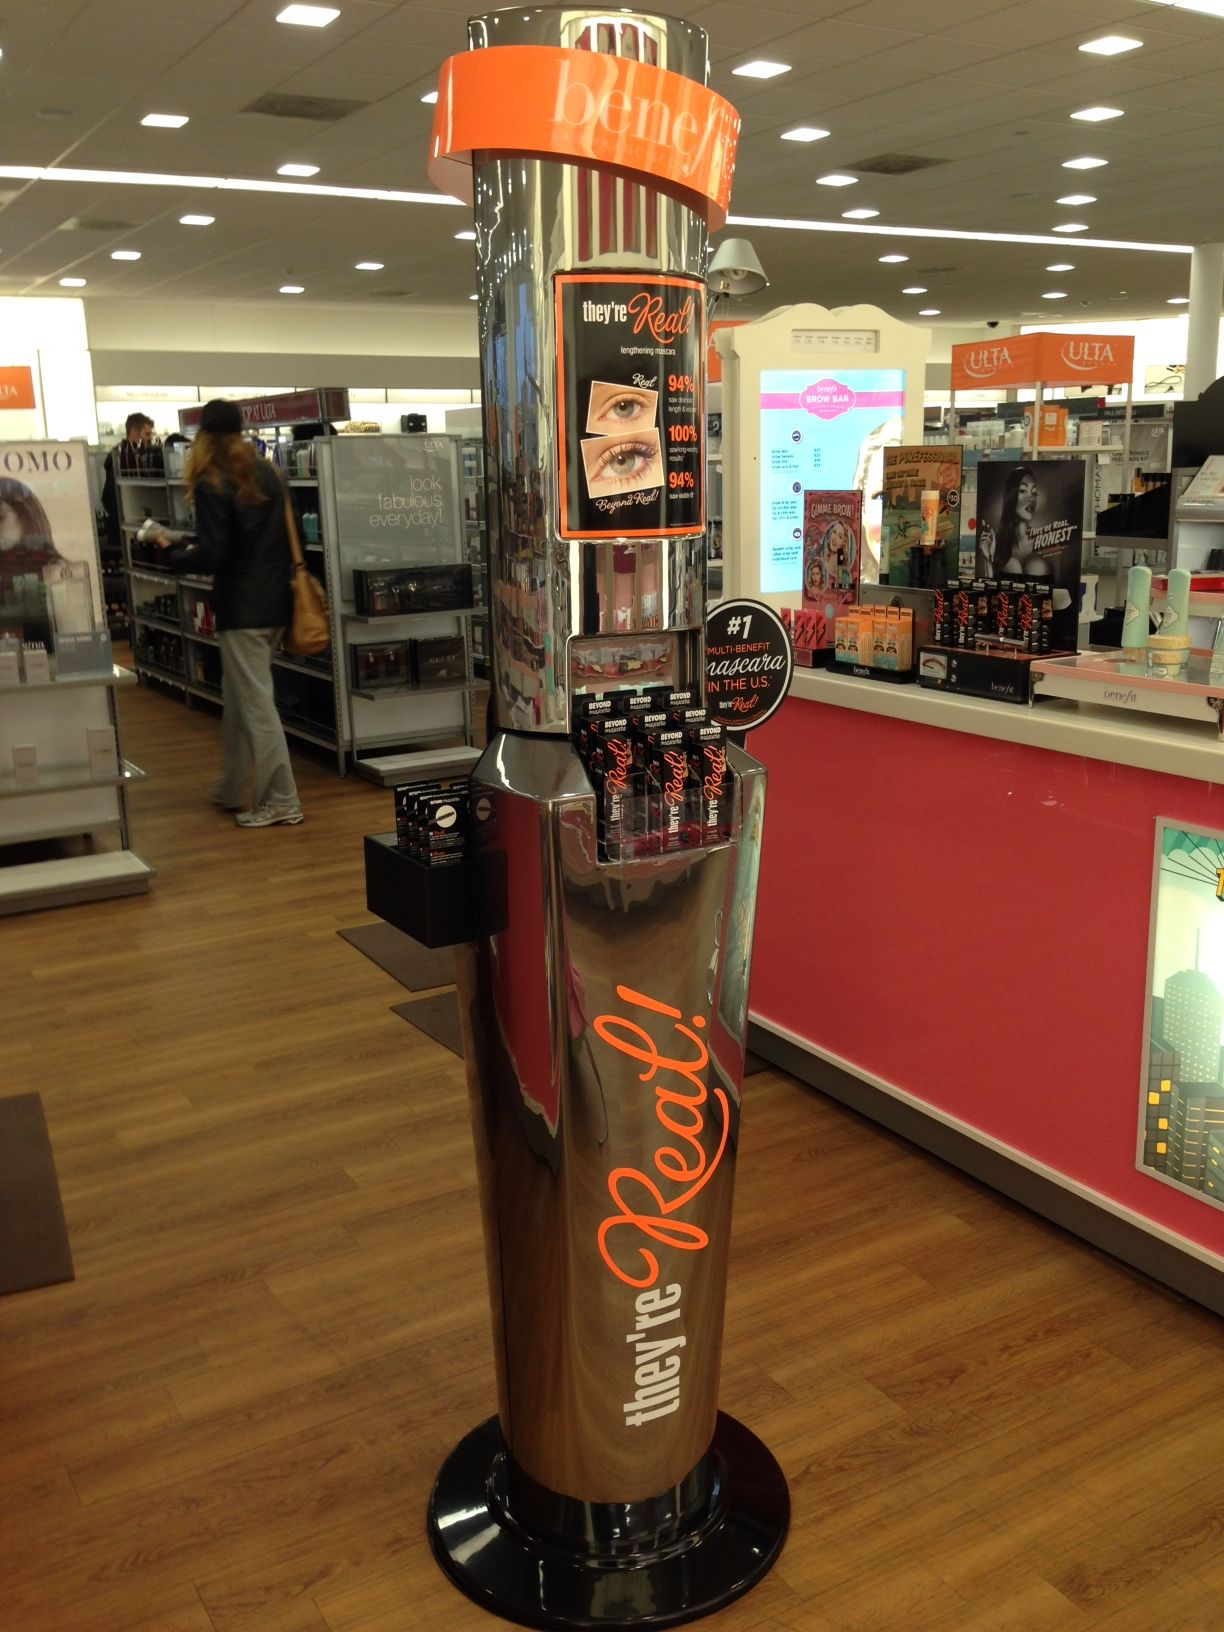 Mascara endcap at Ulta. Jan 2014. (With images) Cosmetic